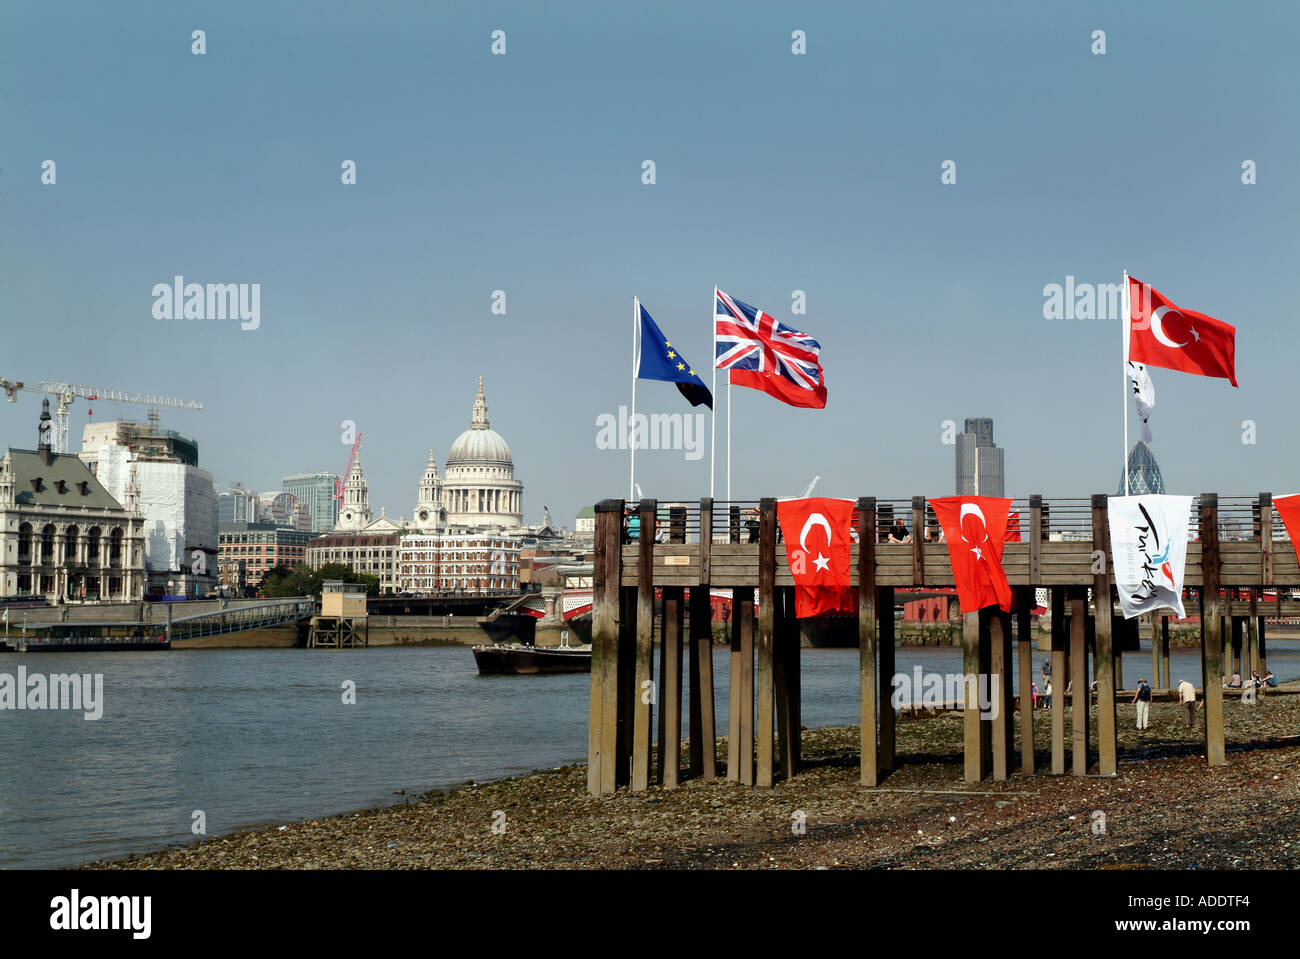 TURKISH FLAG ALONGSIDE WITH UNION JACK AND EUROPEAN UNION FLAGS IN THE BANK OF THE RIVER THAMES LONDON 16 JULY 2005 - Stock Image